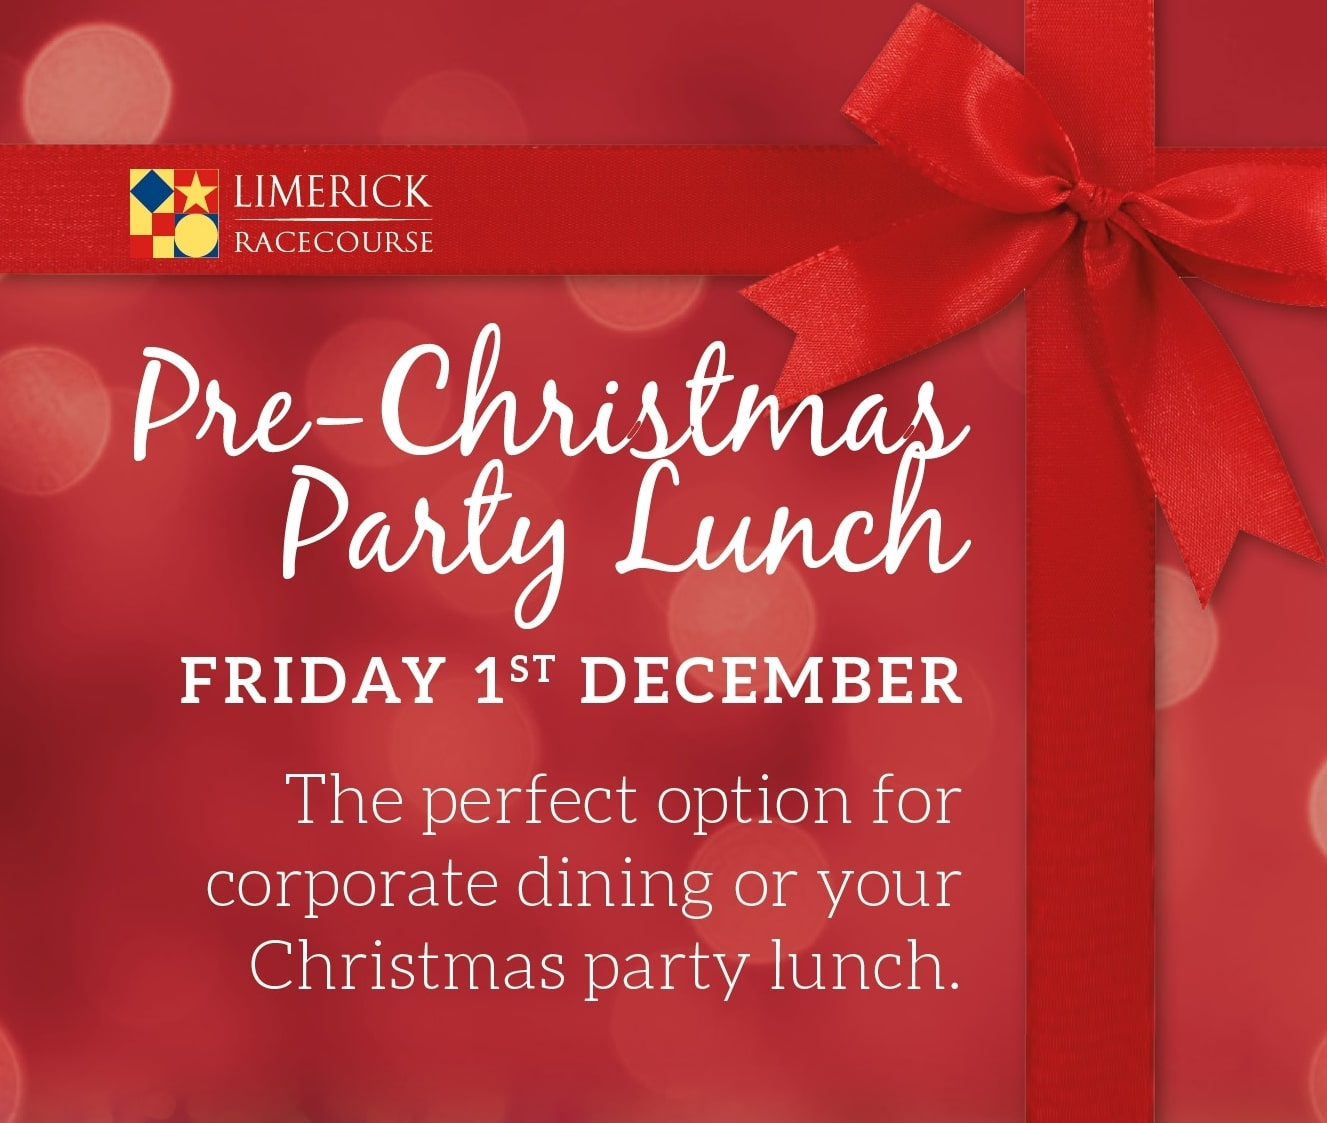 Christmas Party Lunch on Friday 1st December